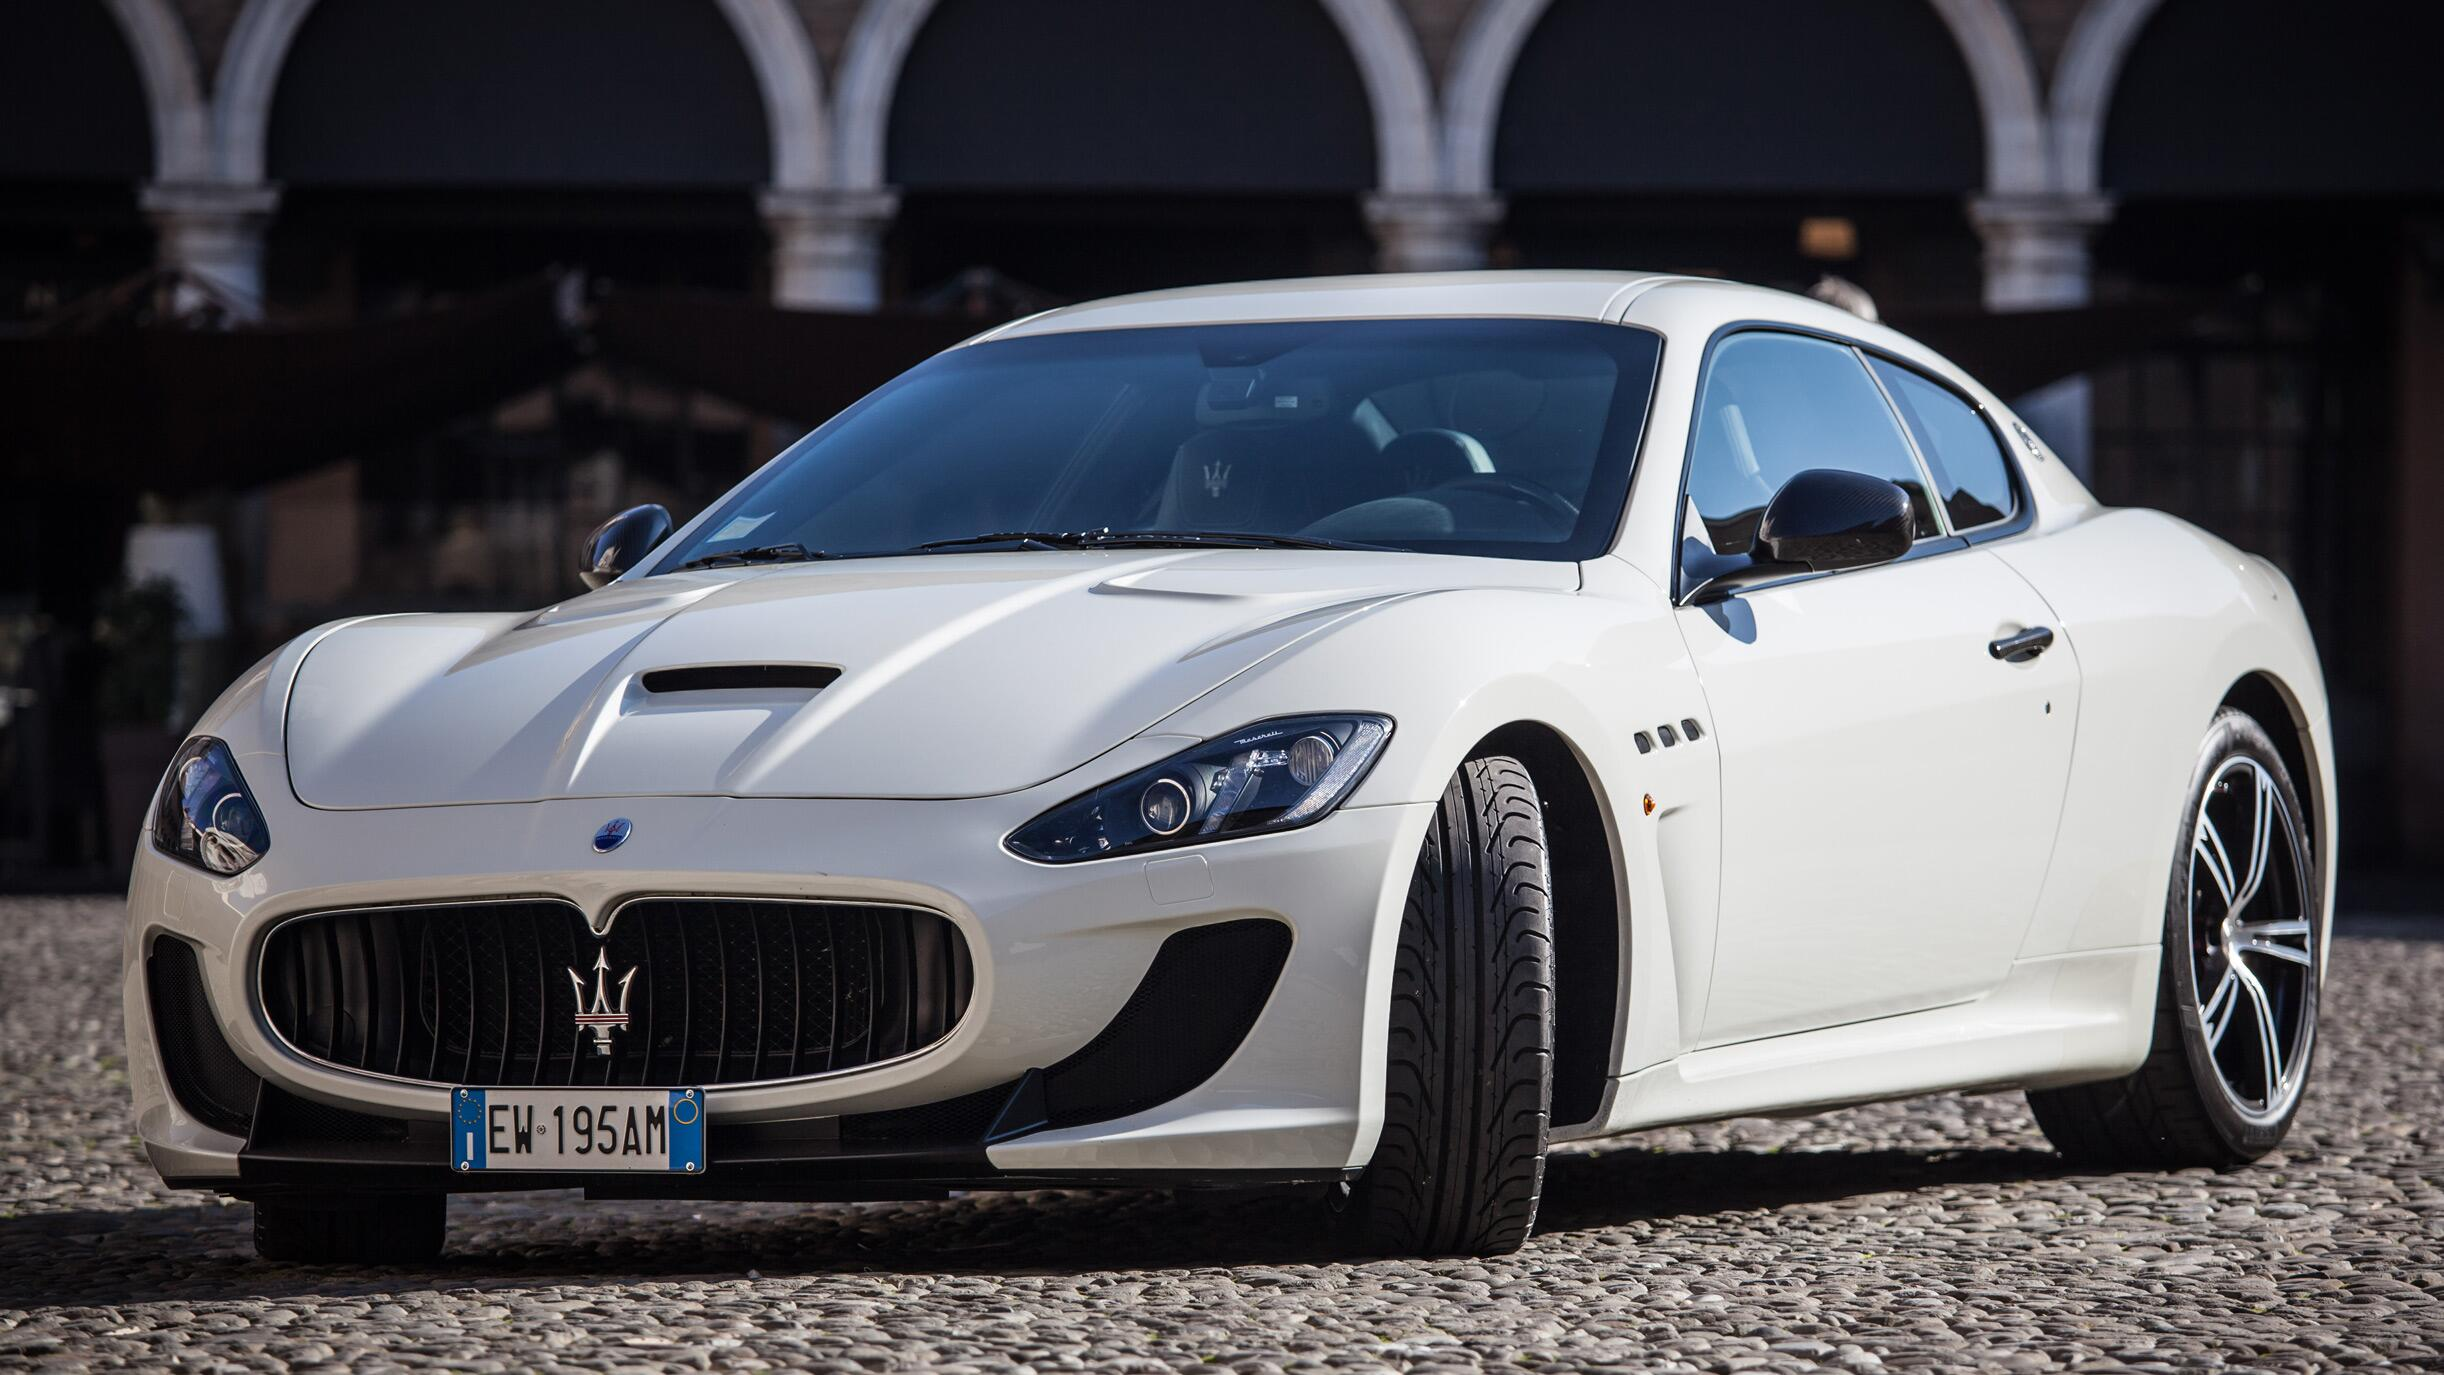 Maserati Gt Mc Stradale Tourist Attraction Topgear India